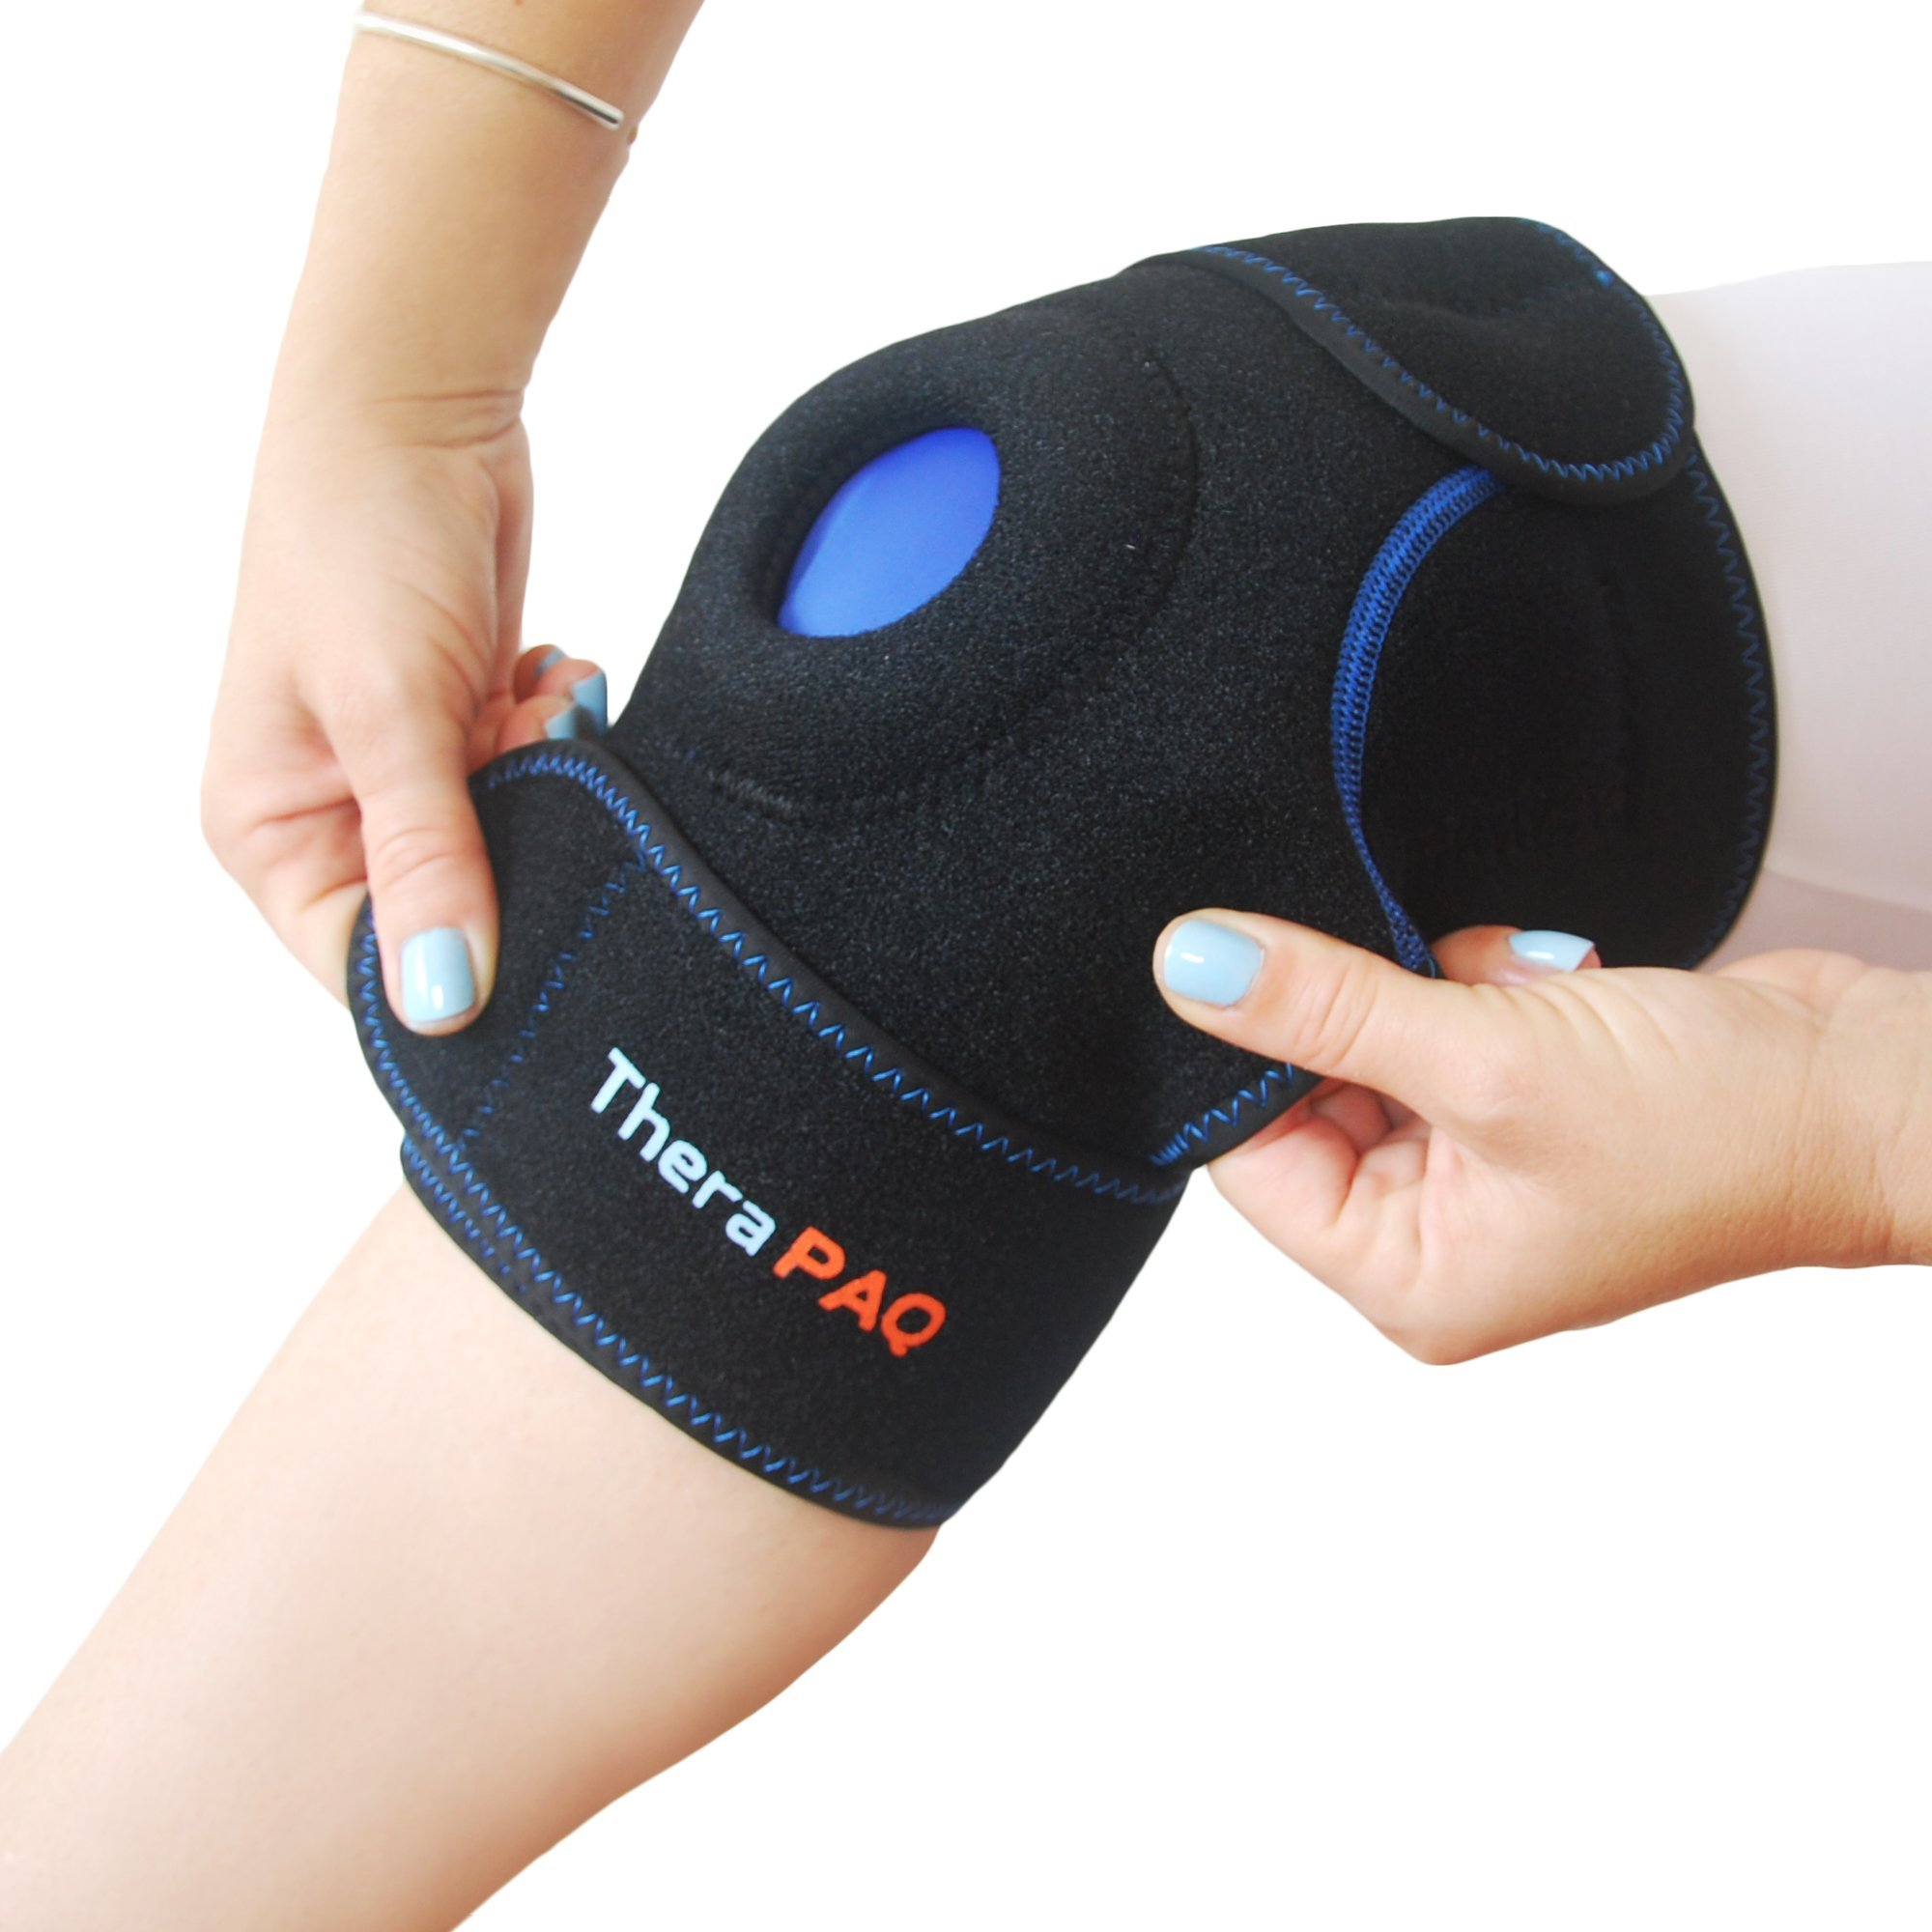 Knee Ice Pack Wrap by TheraPAQ: Hot & Cold Therapy Knee Support Brace - Reusable Compression Sleeve for Bursitis Pain Relief, Meniscus Tear, Rheumatoid Arthritis, Injury Recovery, Sprains & Swelling by TheraPAQ